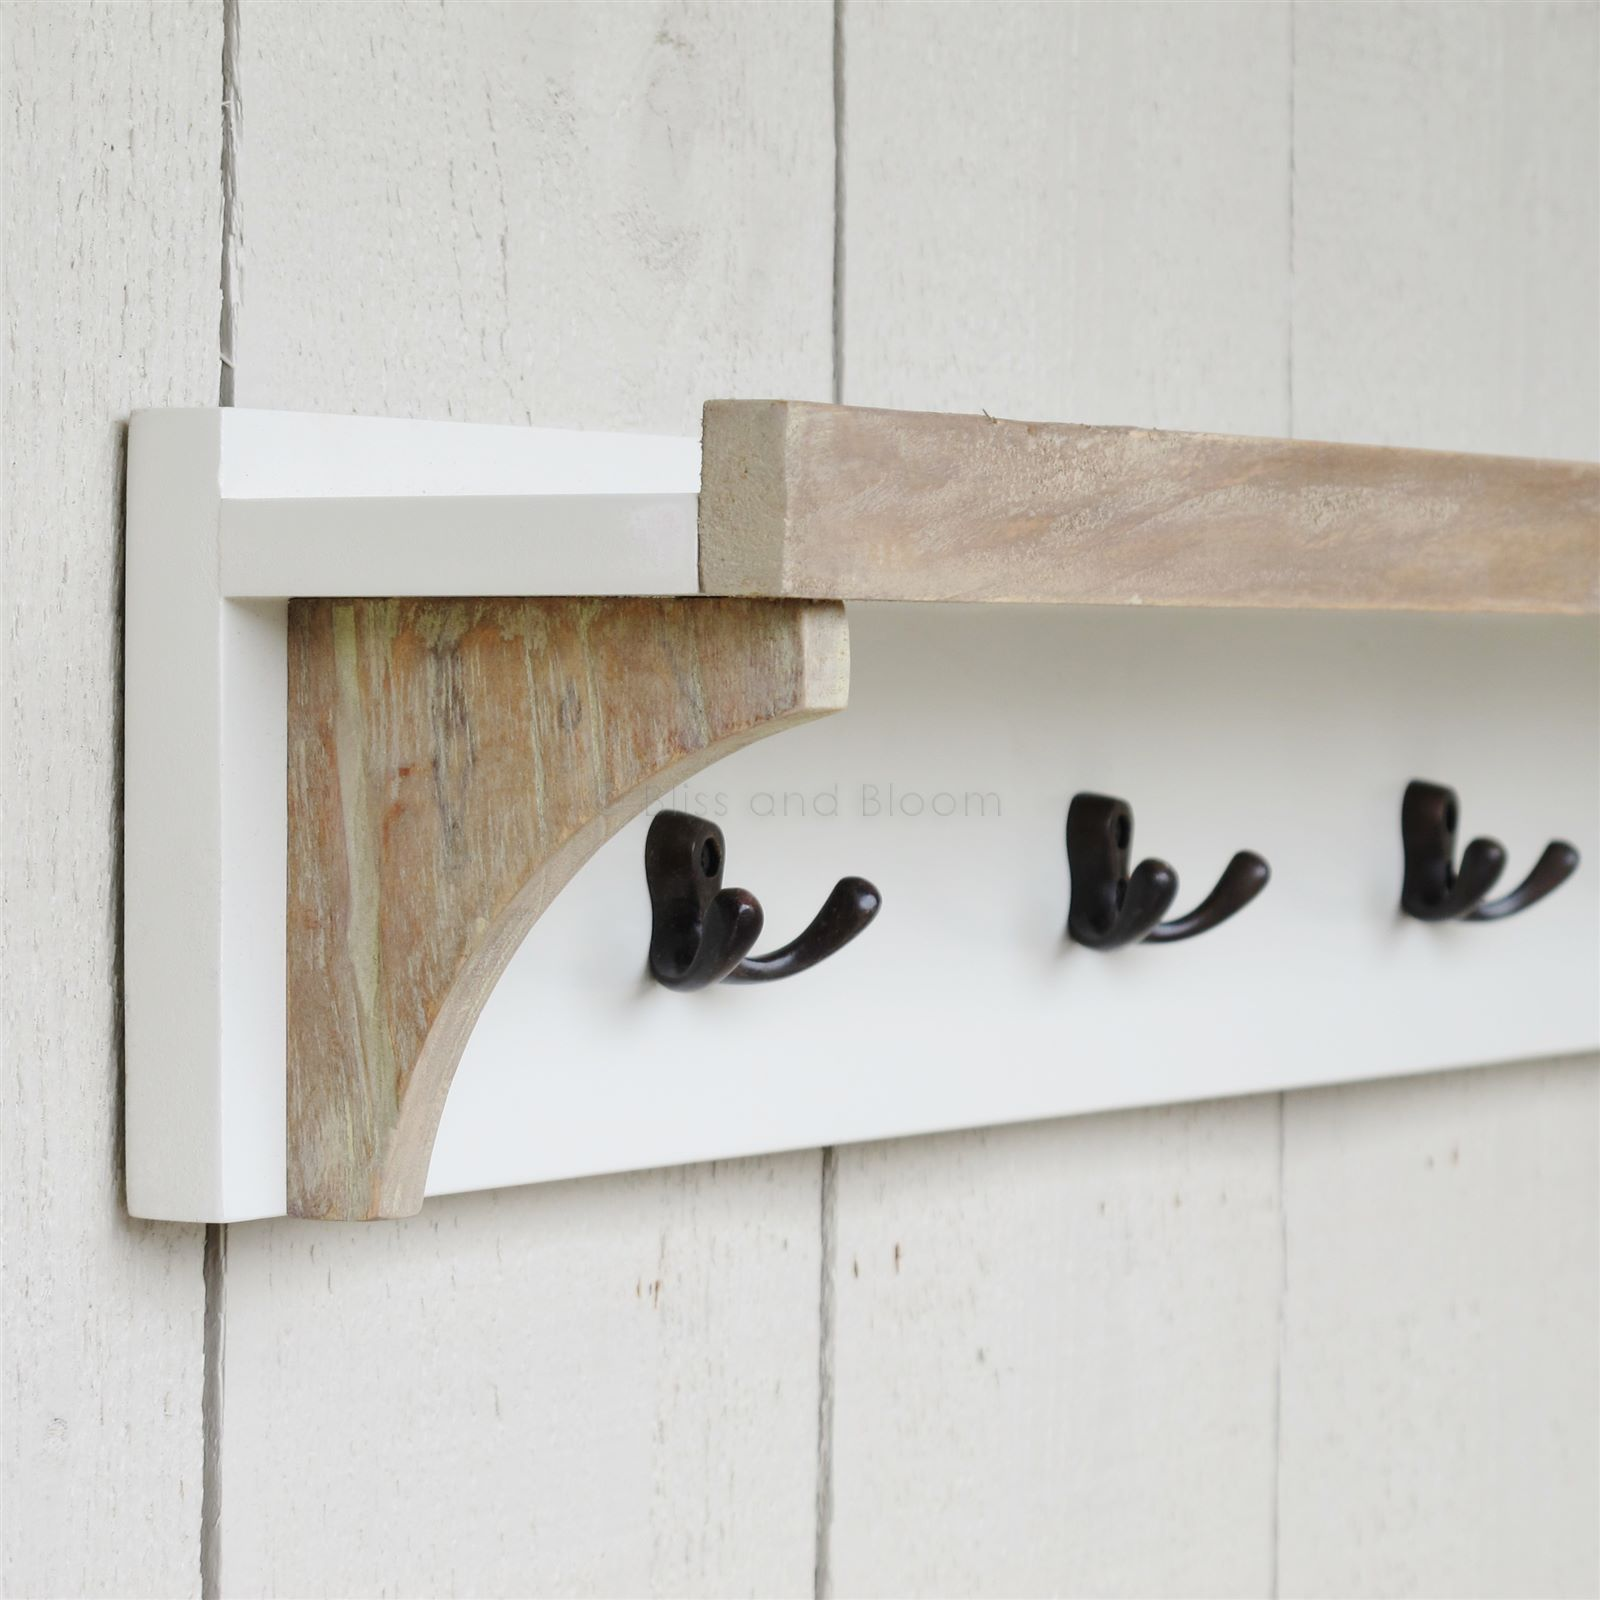 Coat Rack With Shelf Coat Rack With Shelf 5 Hooks Bliss And Bloom Ltd